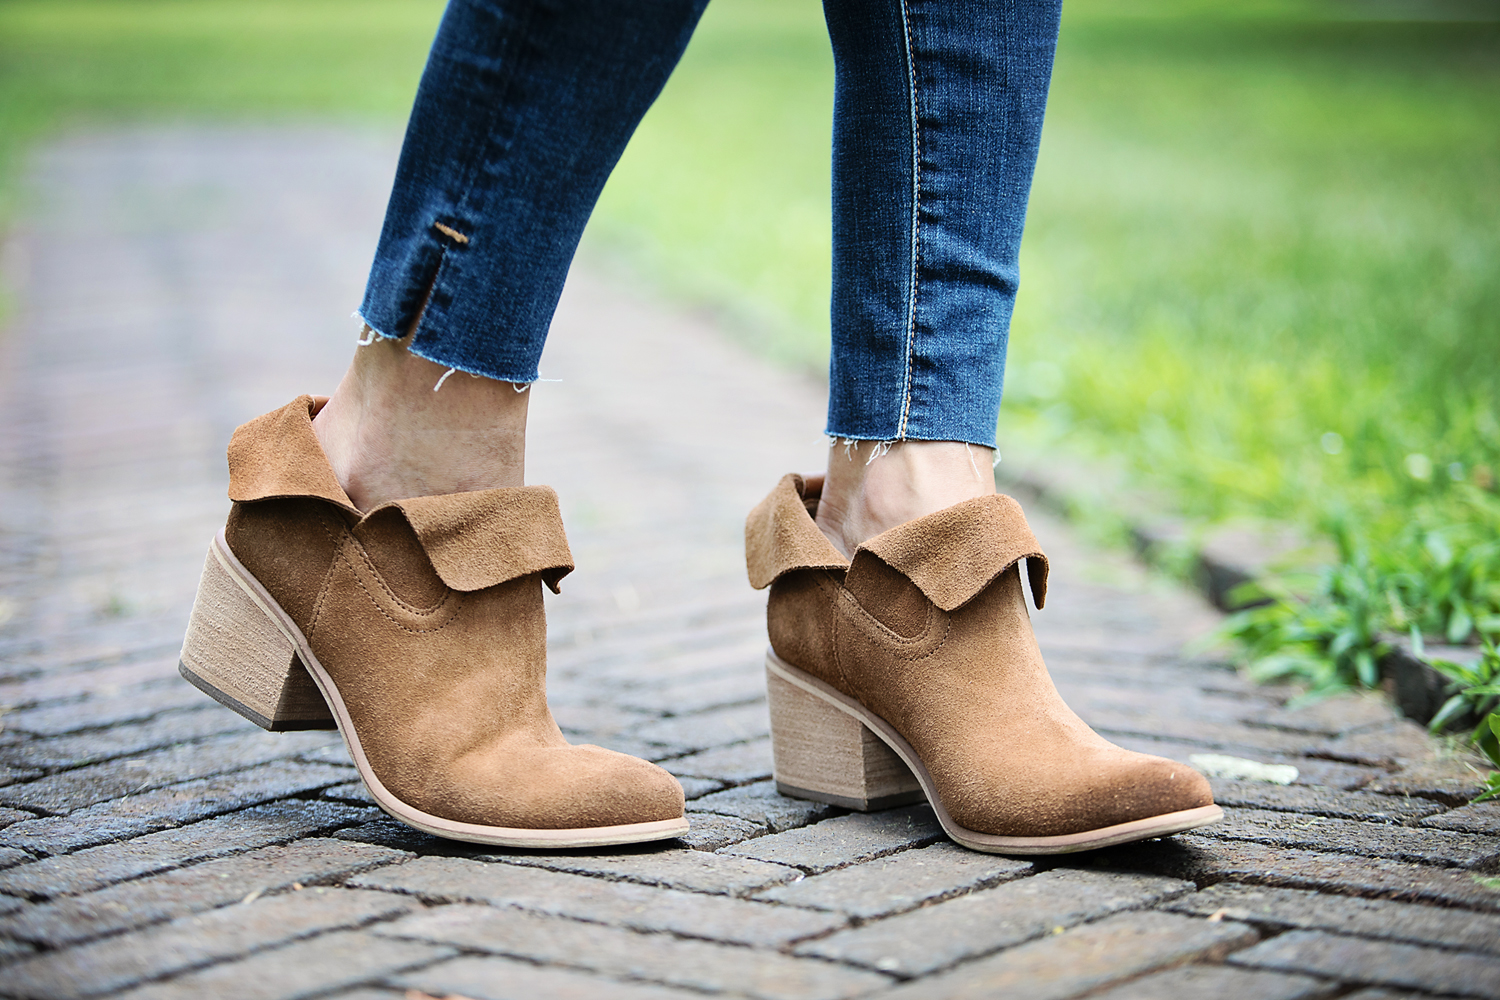 The Motherchic wearing nordstrom anniversary sale BP Booties